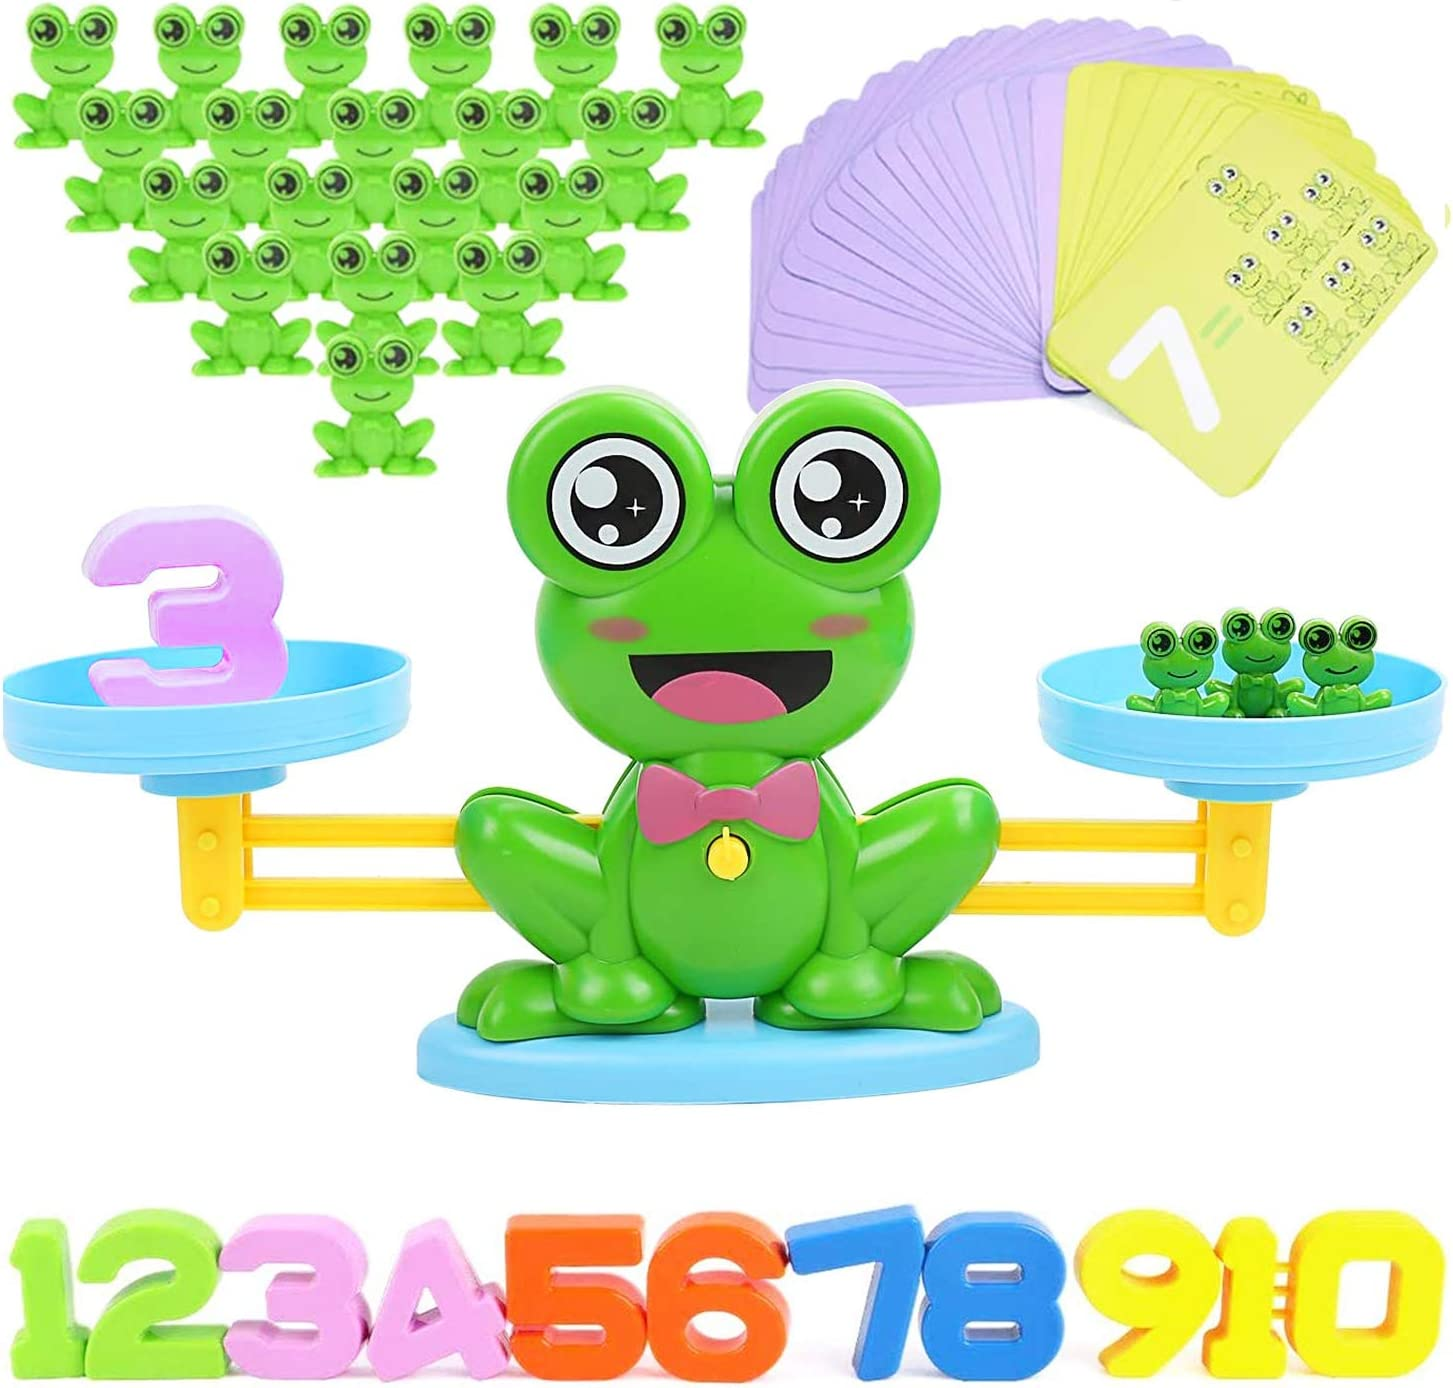 STEM Educational Learning Toy Frog/&Card/&Number Children Mathematics Toy Teaching/&Student Counting Game Gift Toy for Boys Girls MOISO Balance Math Game Toys for Kid Toddler